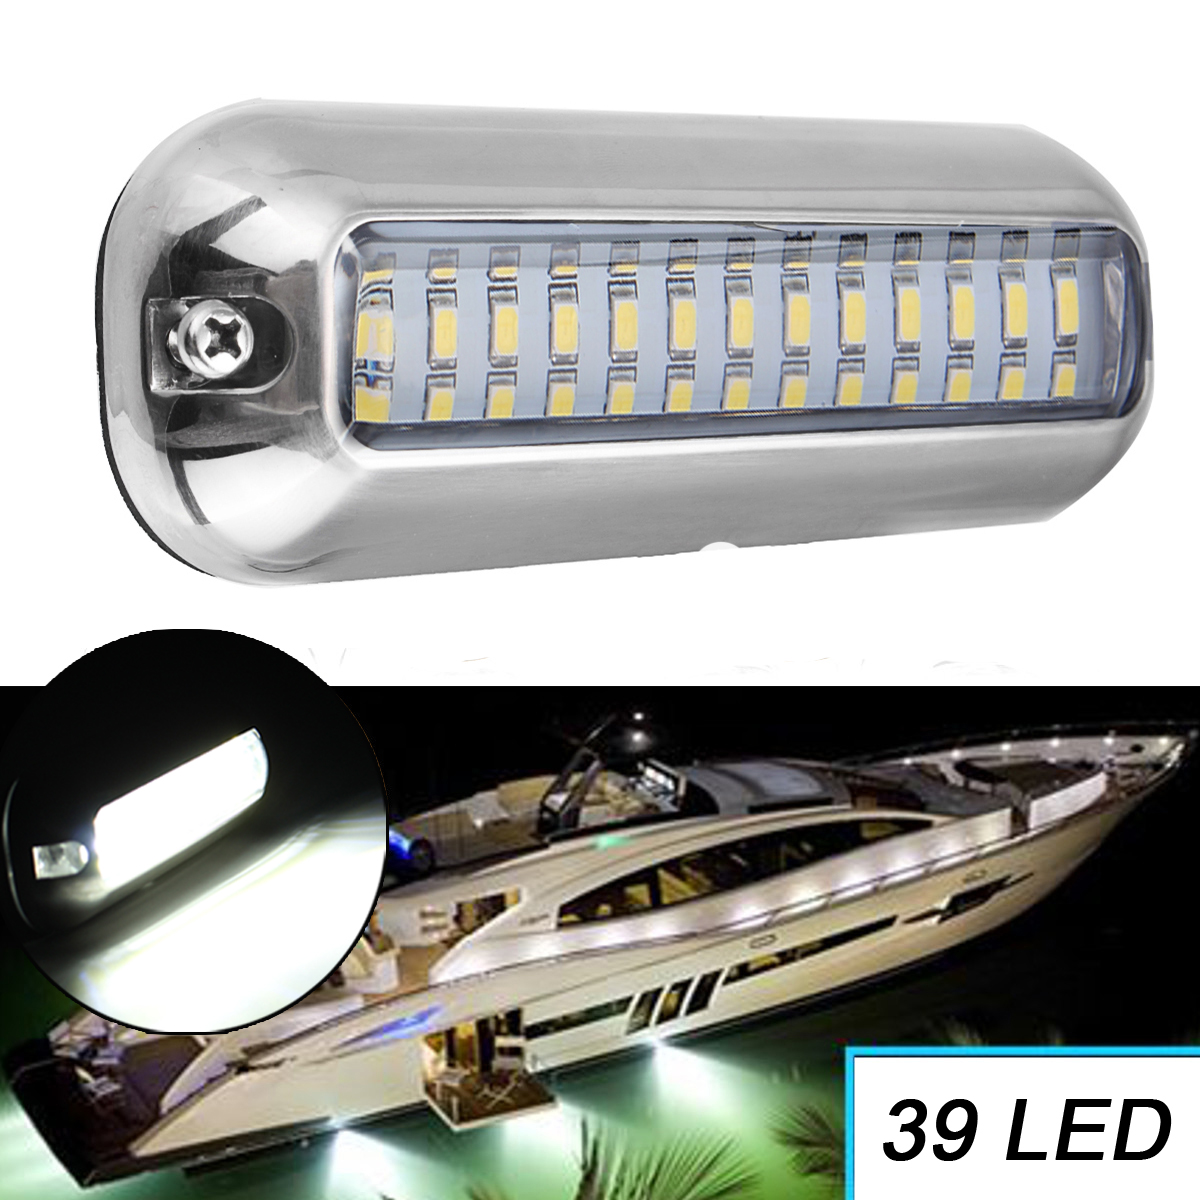 1pc Universal 39 Led Underwater Pontoon Boat Transom Fishing Lights Lamp Bulb Boat Transom Light Cover Waterproof High Intensity Boat Parts & Accessories